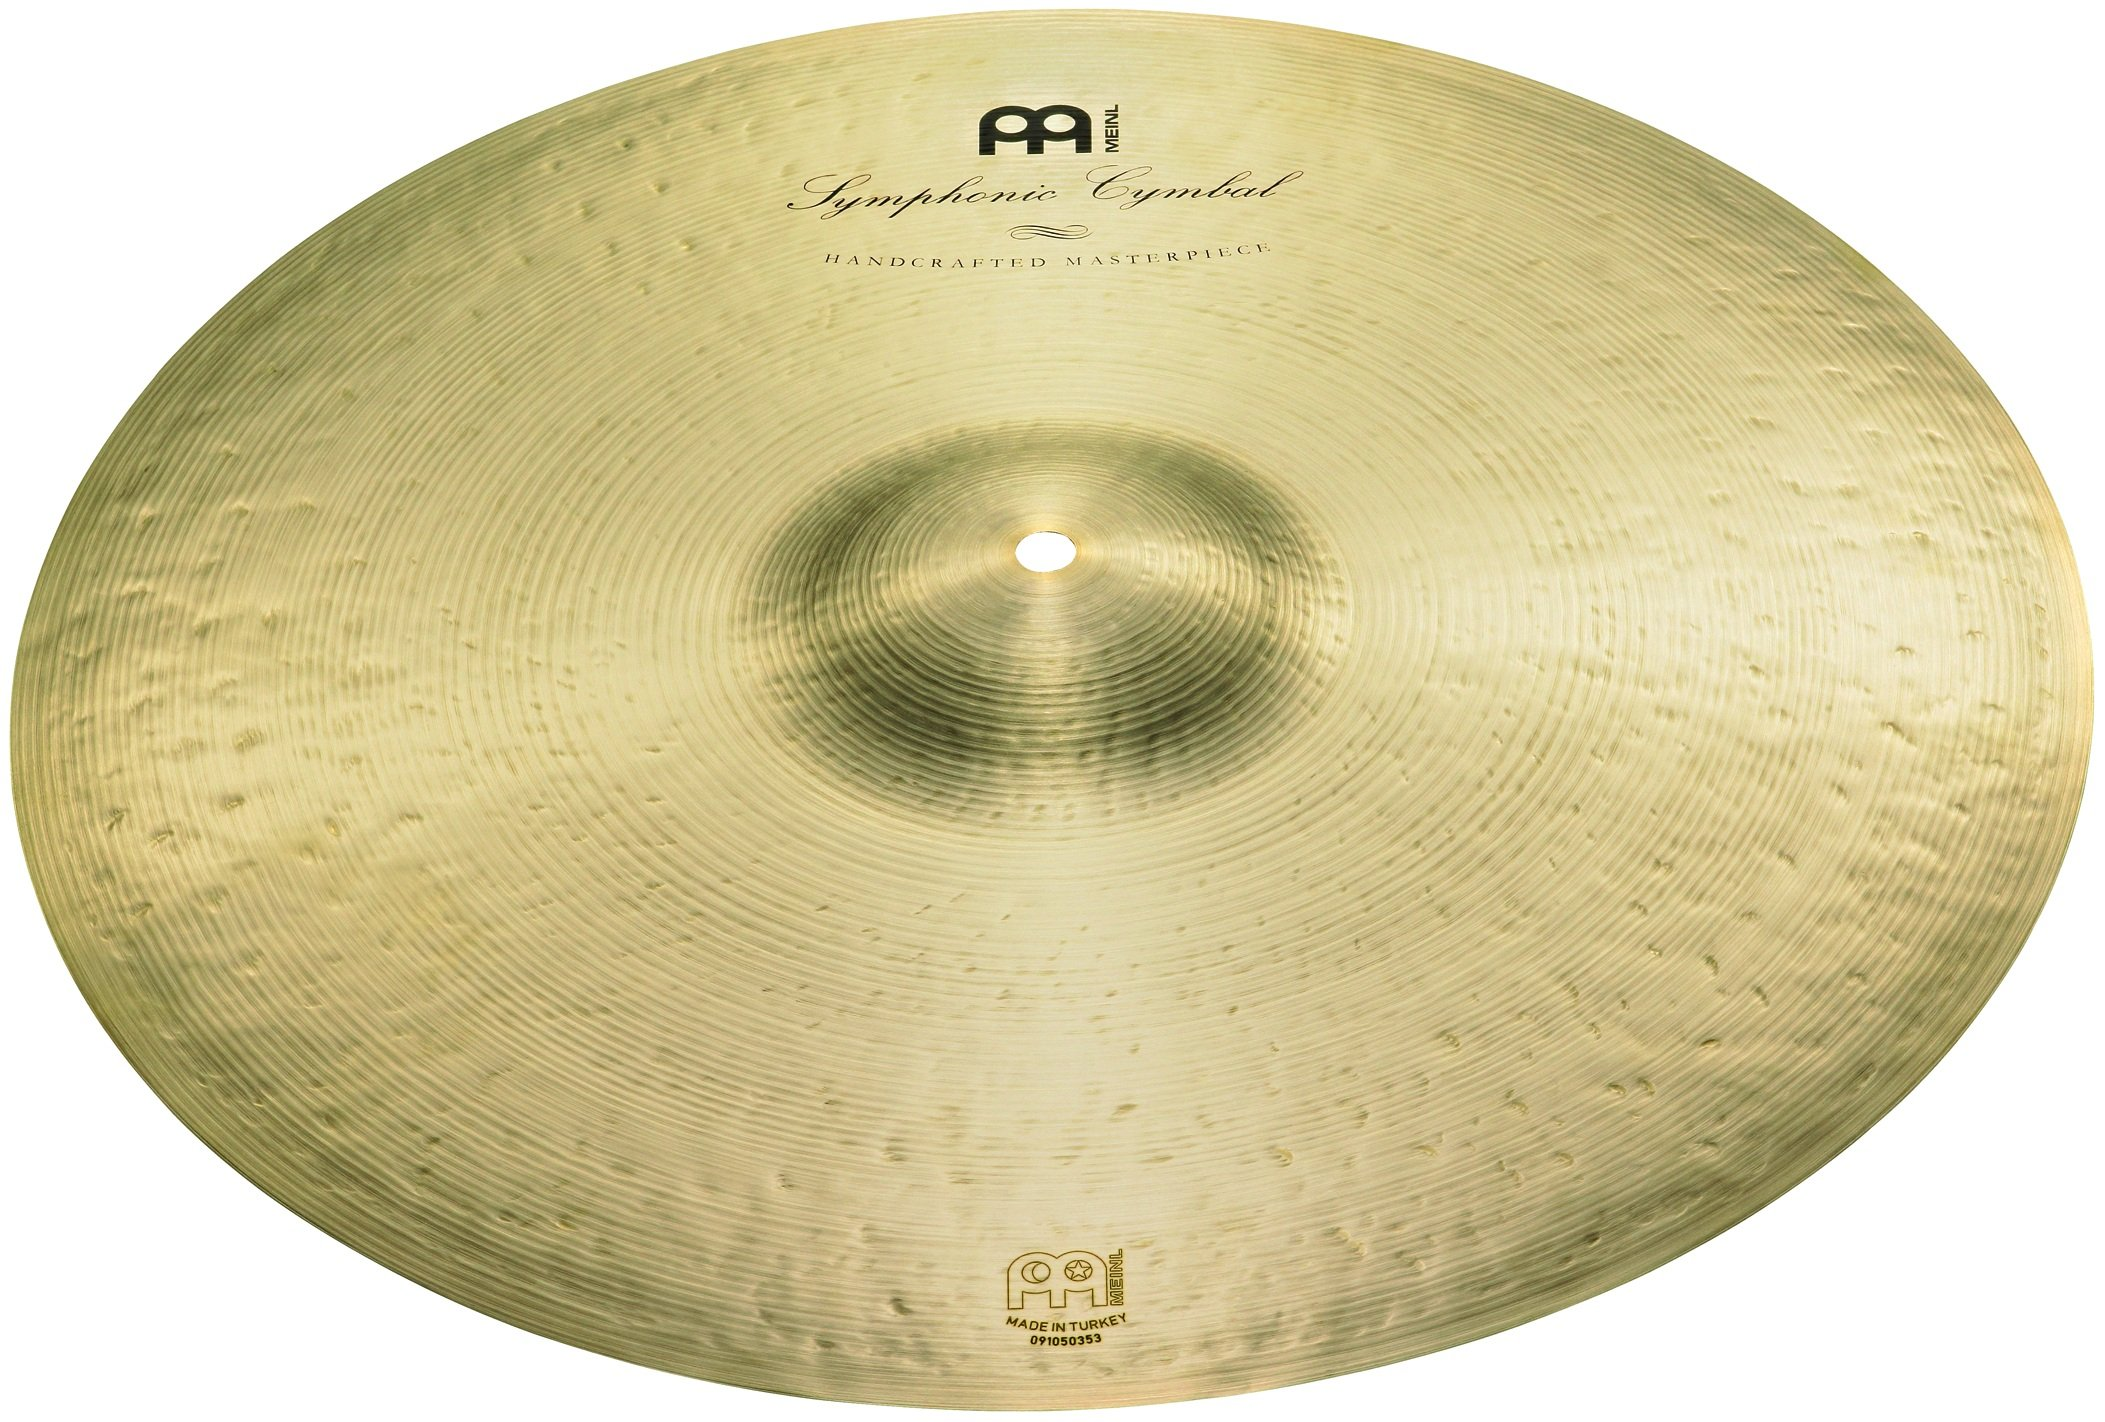 Meinl Cymbals SY-18SUS Symphonic 18-Inch Suspended Cymbal